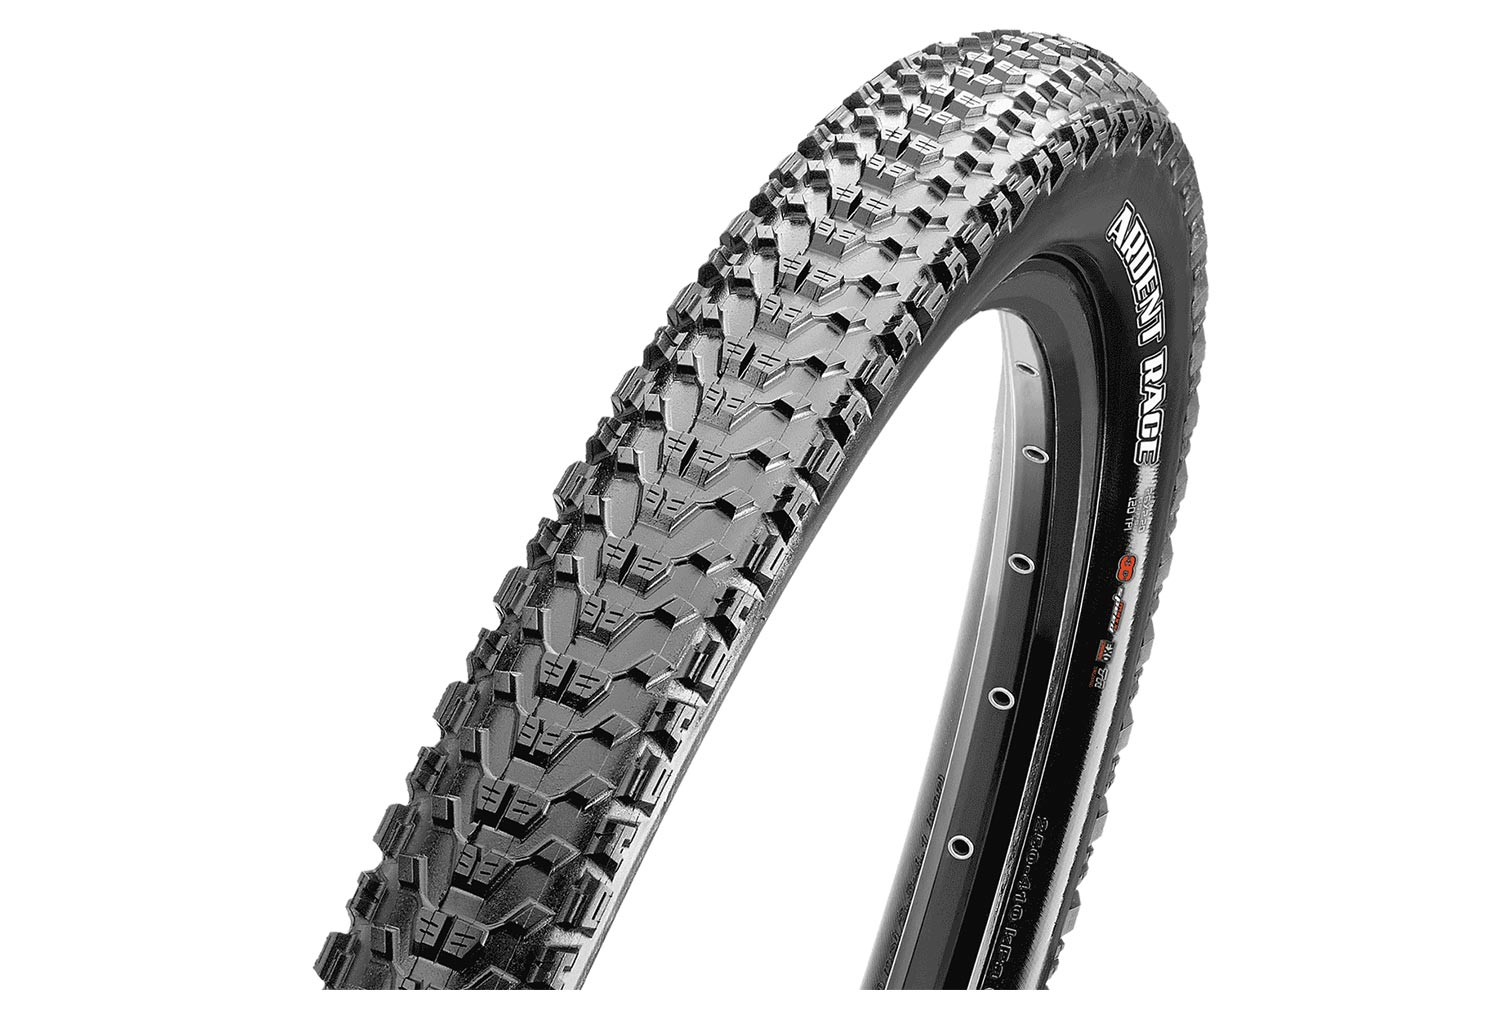 pneu maxxis ardent race 29 exo protection tubeless ready. Black Bedroom Furniture Sets. Home Design Ideas